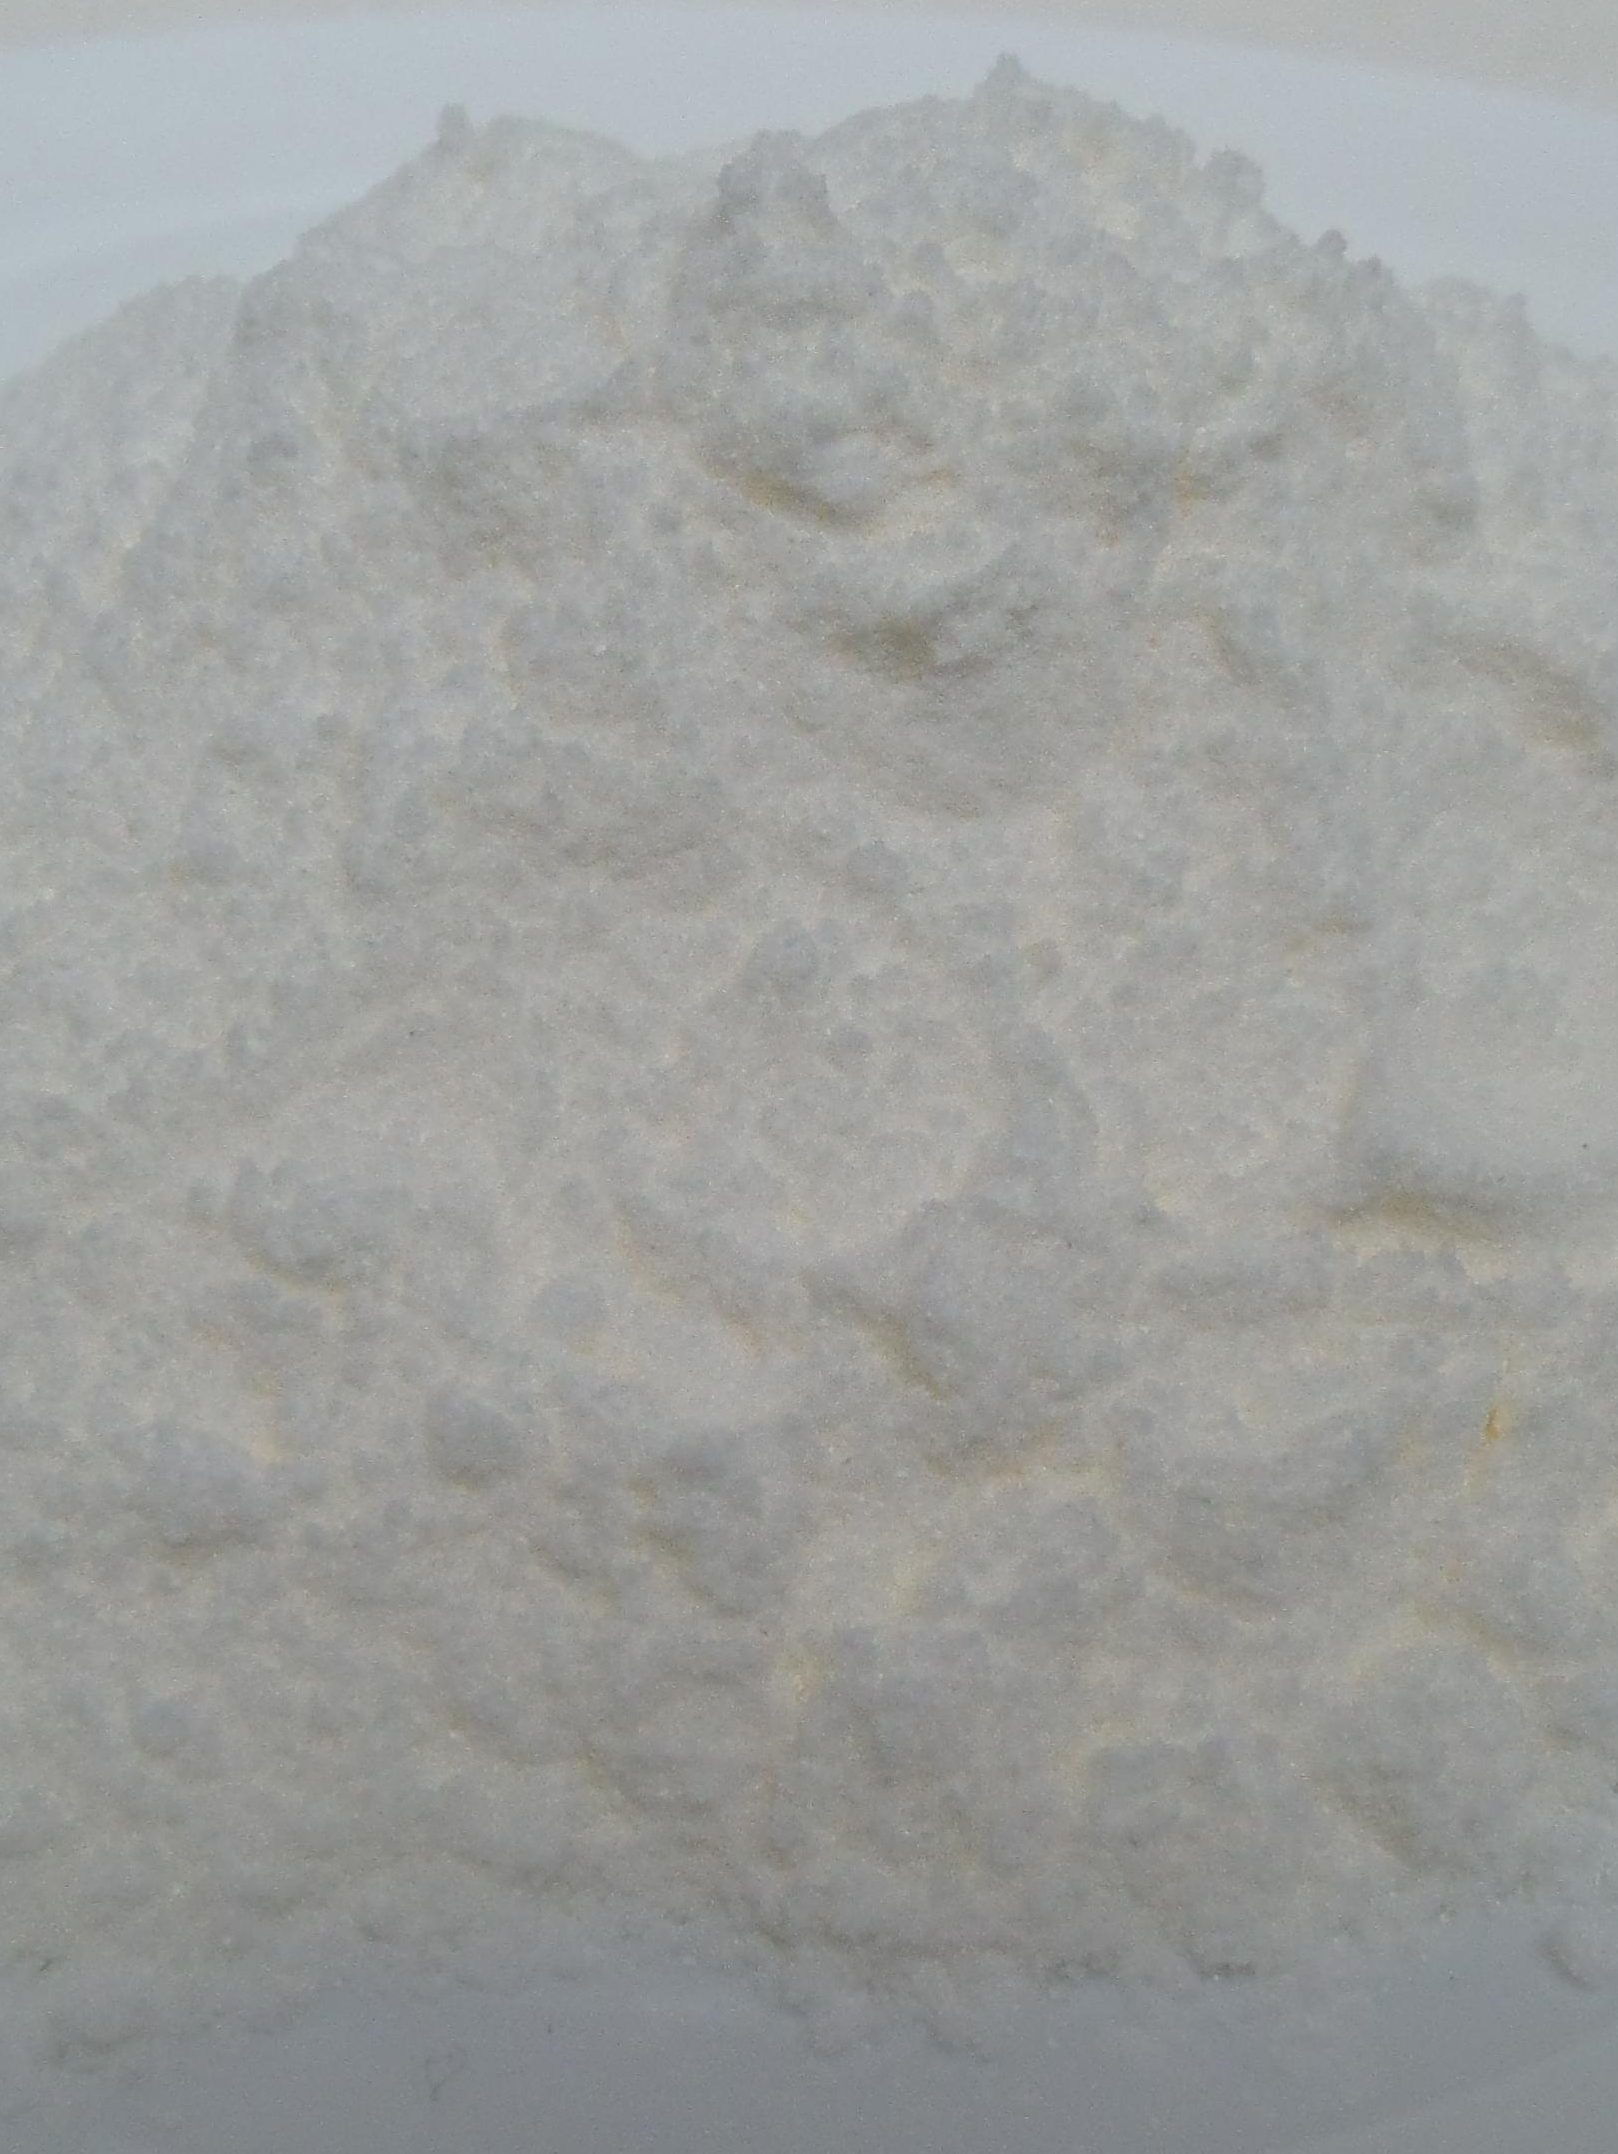 Chondroitin Sulphate kg